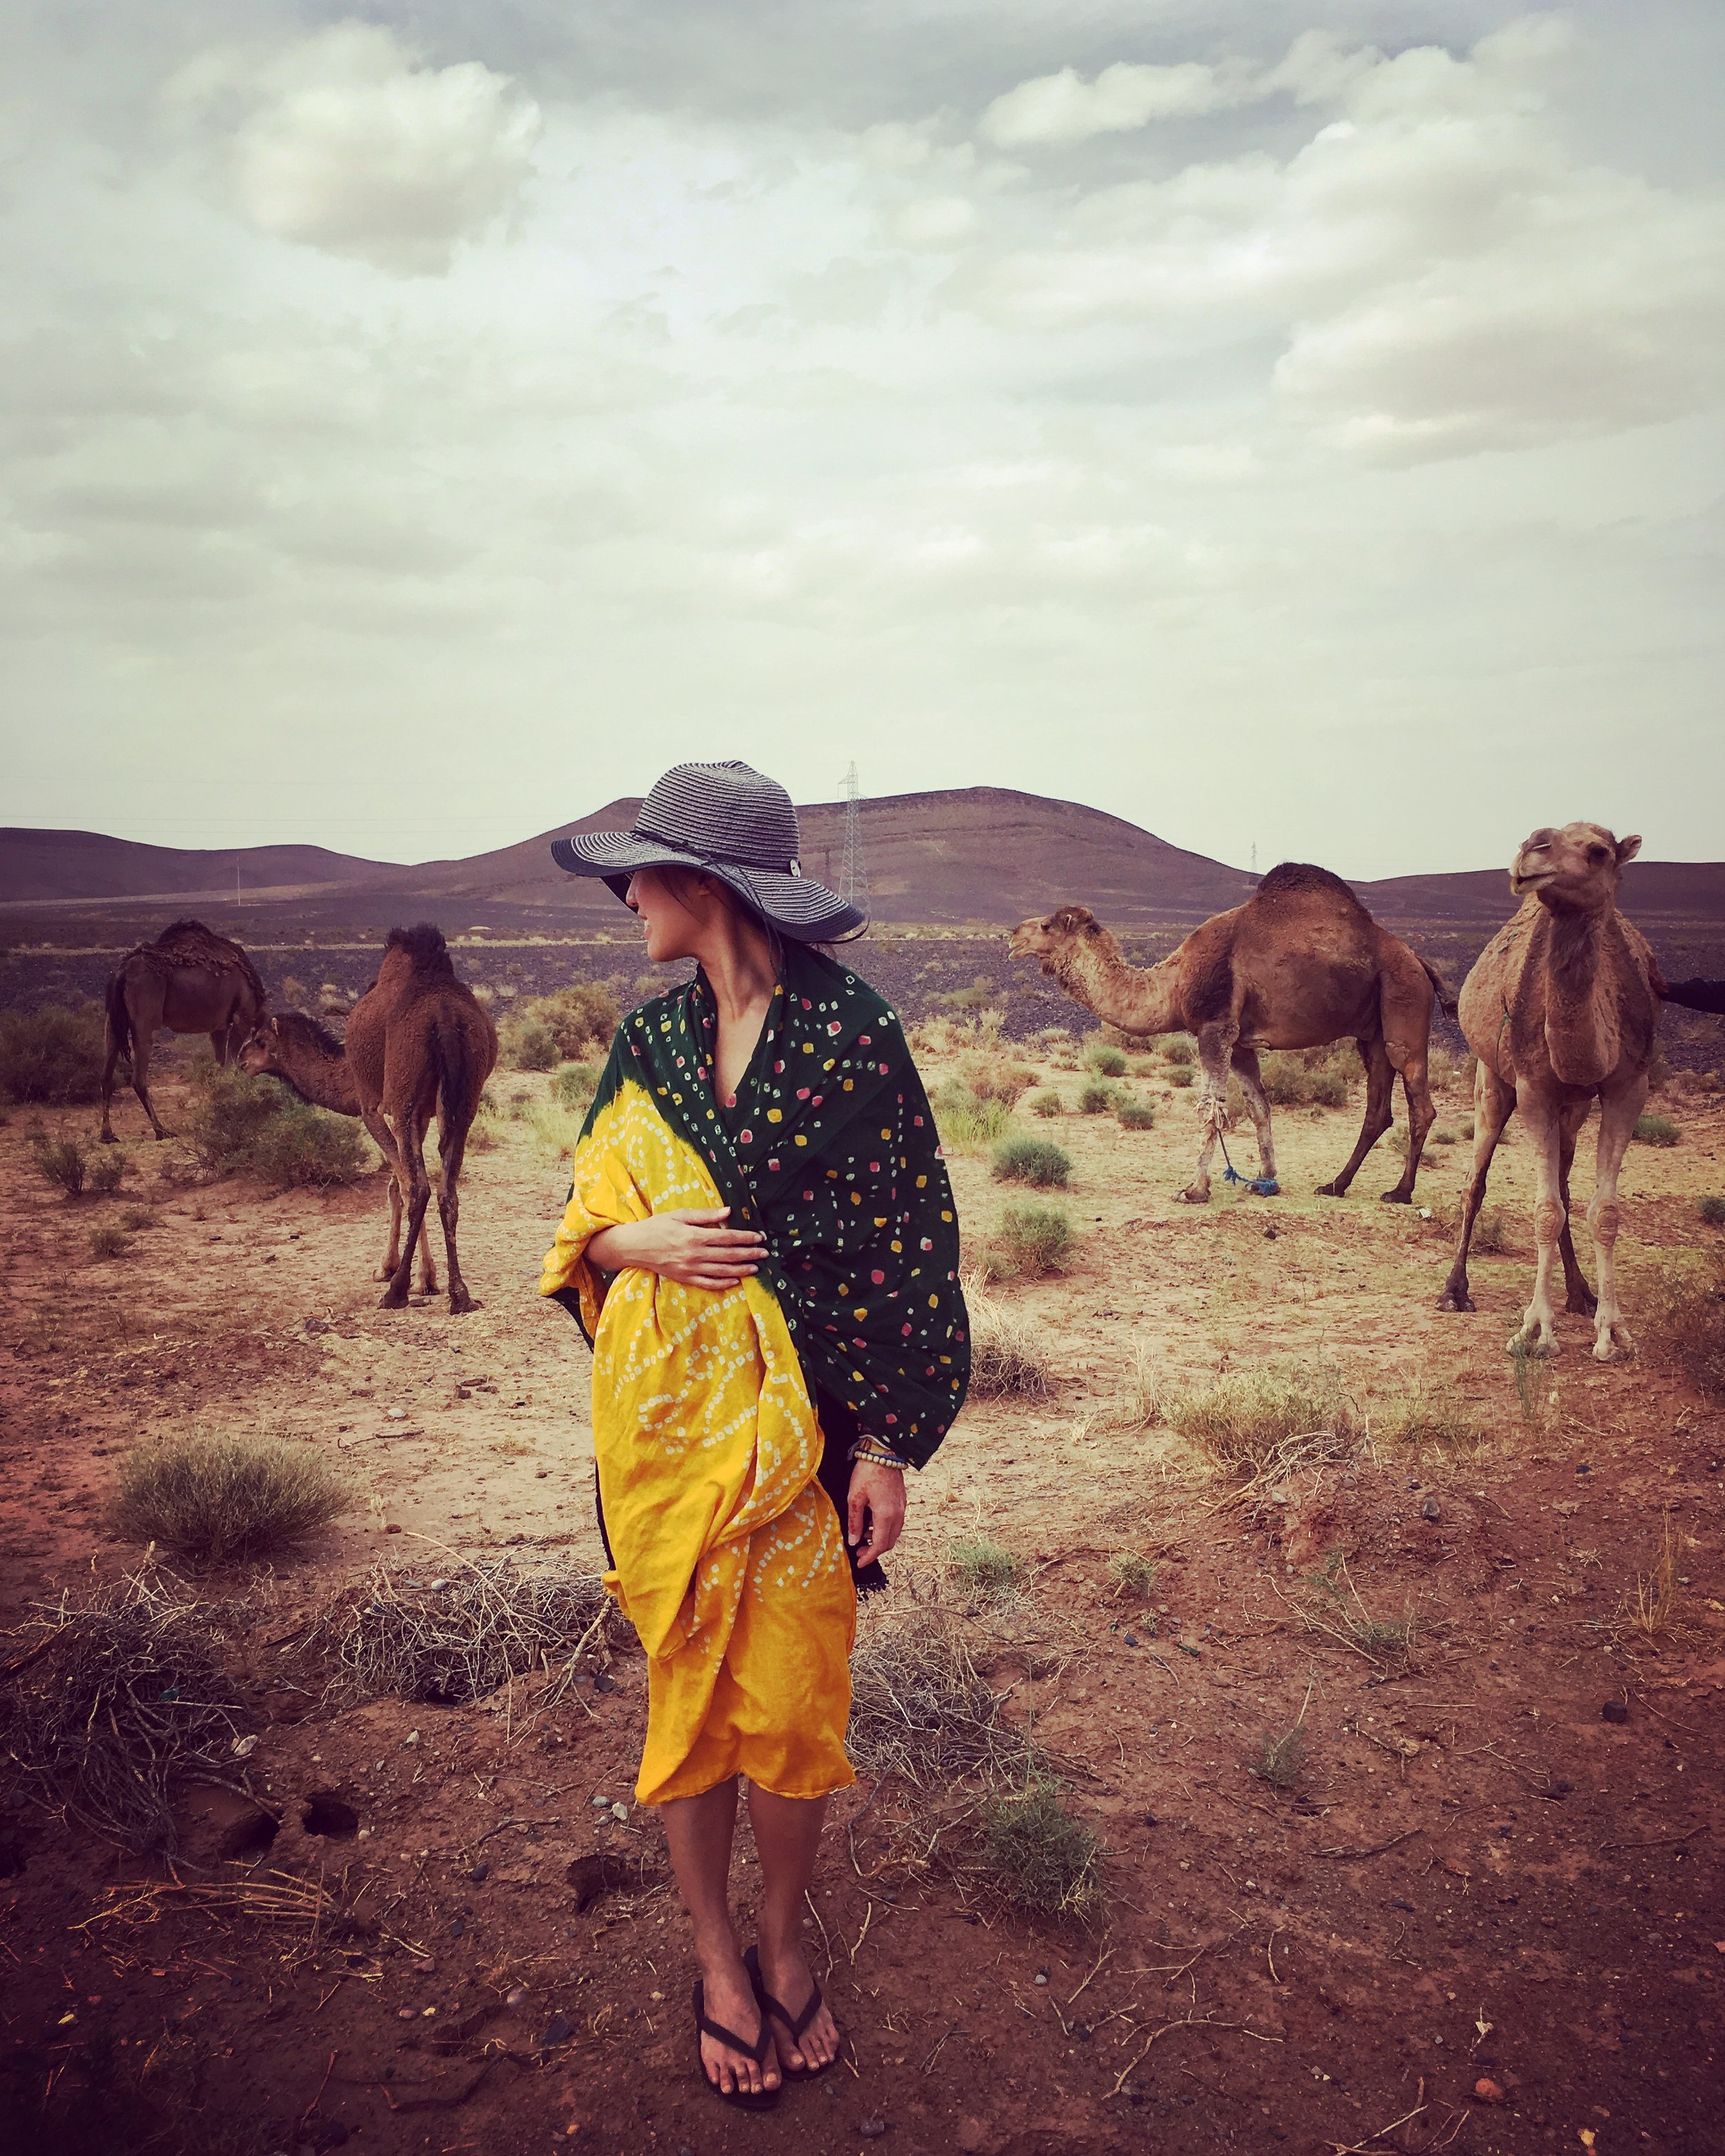 Strike a pose with roadside camels